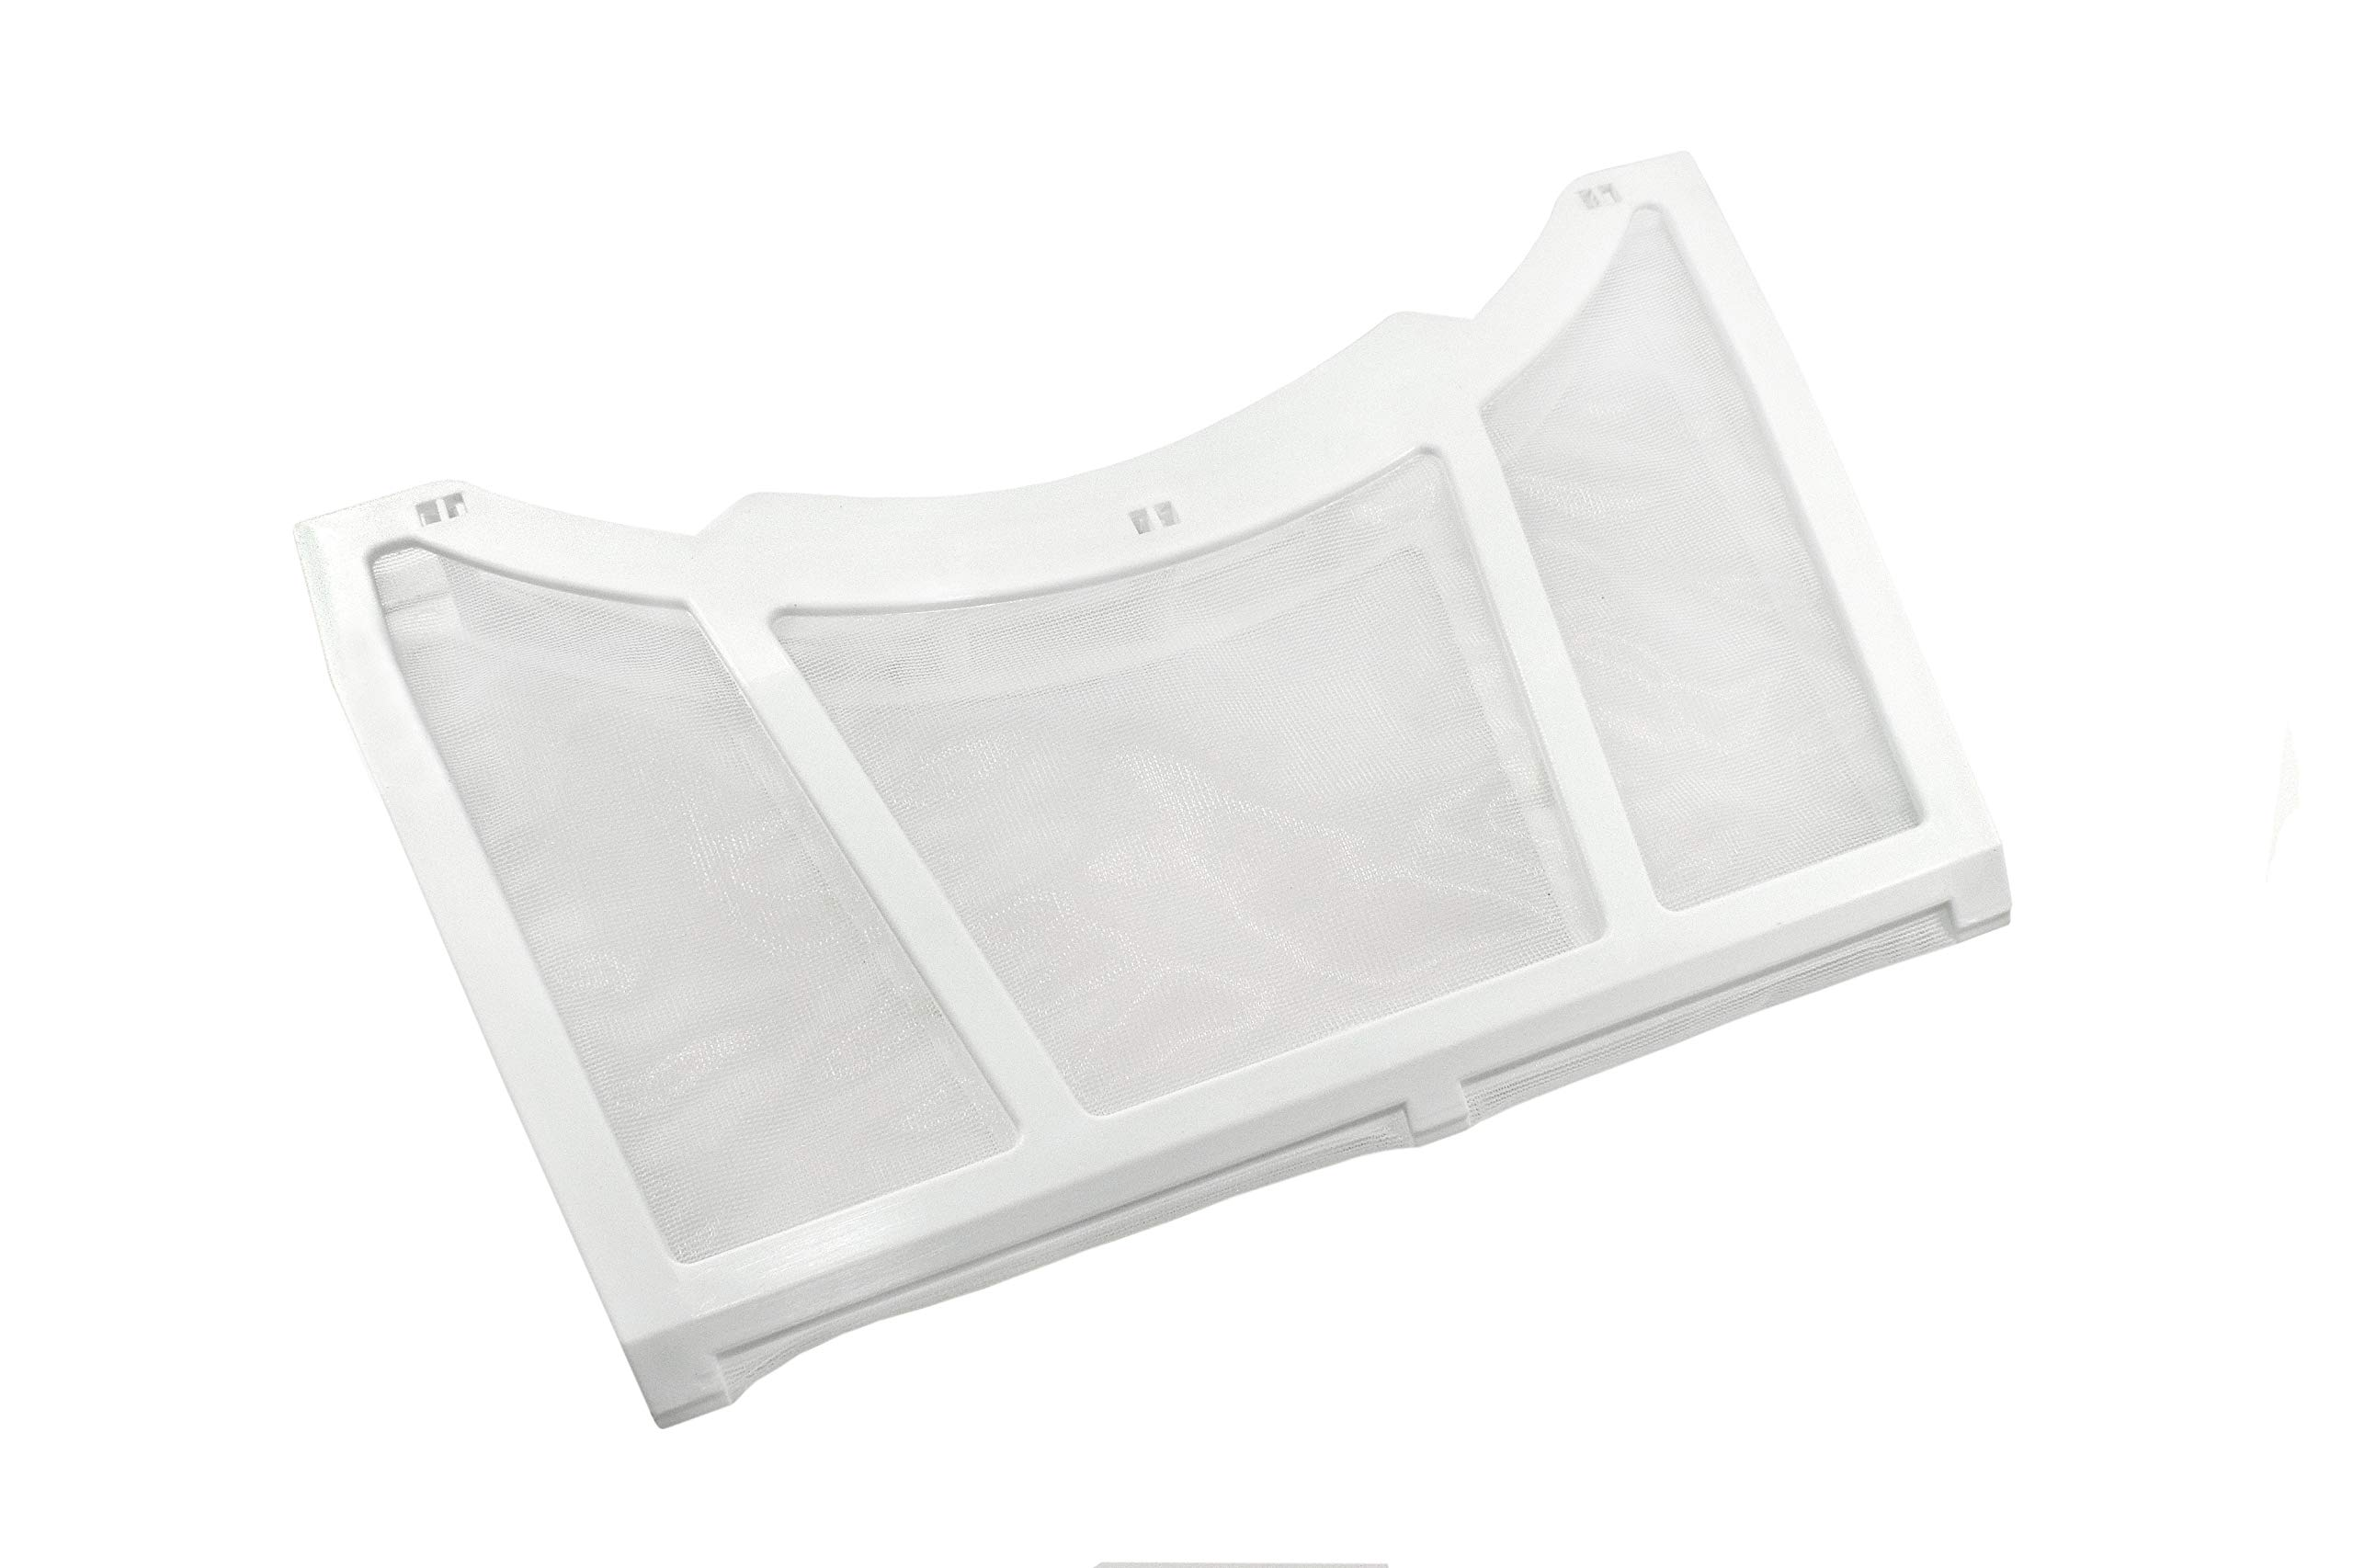 HQRP Tumble Dryer Lint Fluff Filter compatible with White Knight 421309218351 fits White Knight Crosslee Electra CL700…